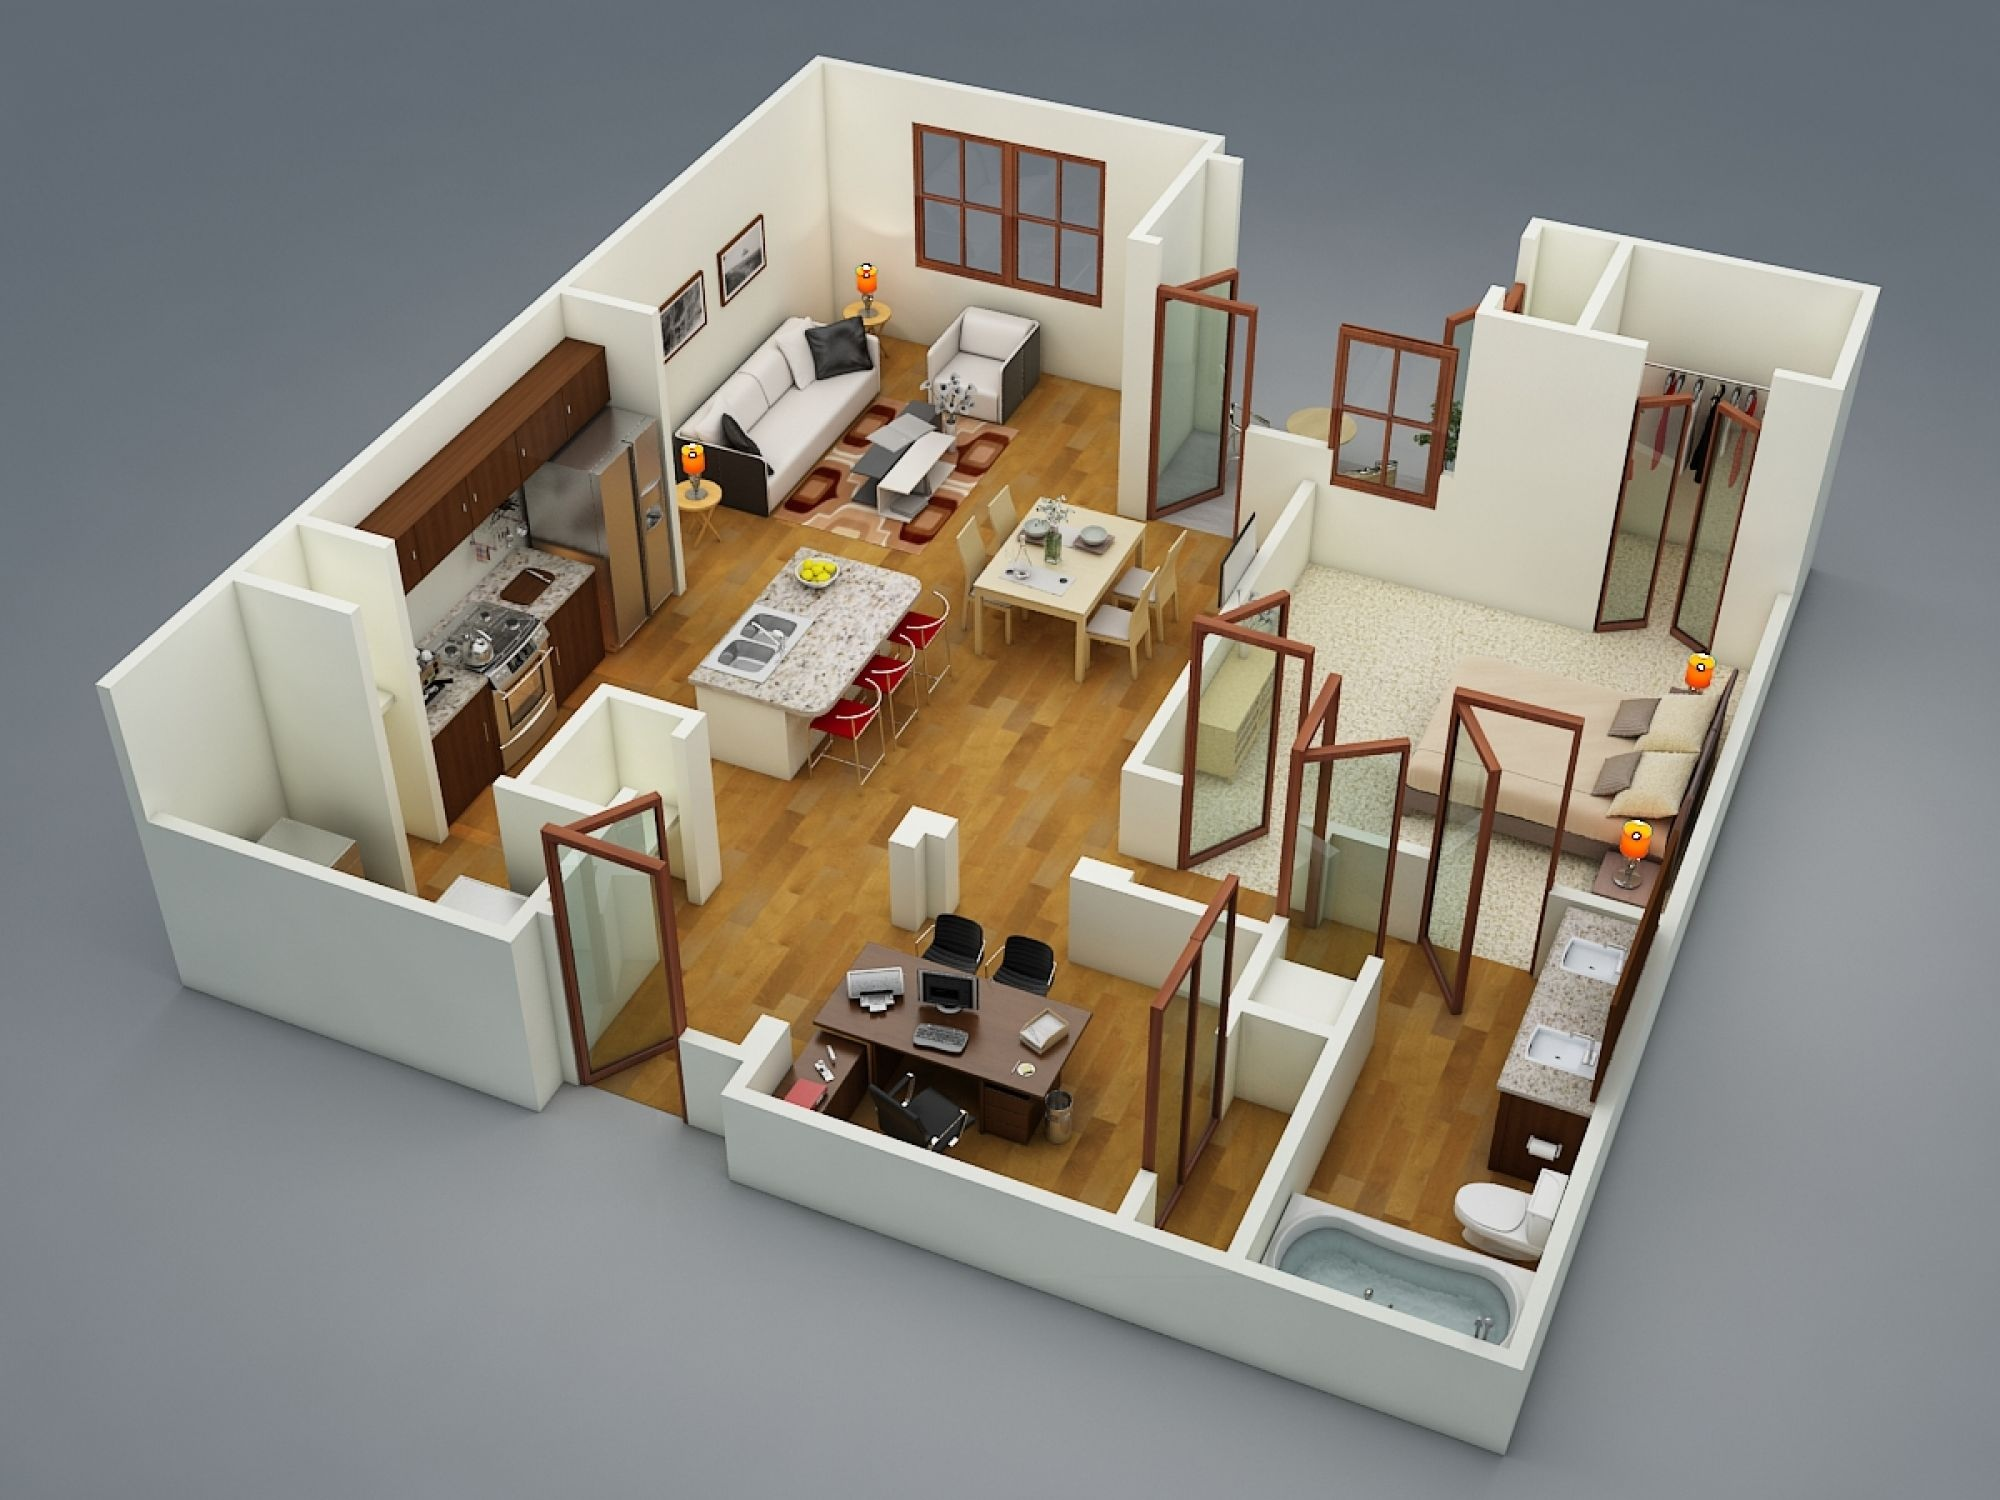 1 bedroom apartmenthouse plans - Home Planing